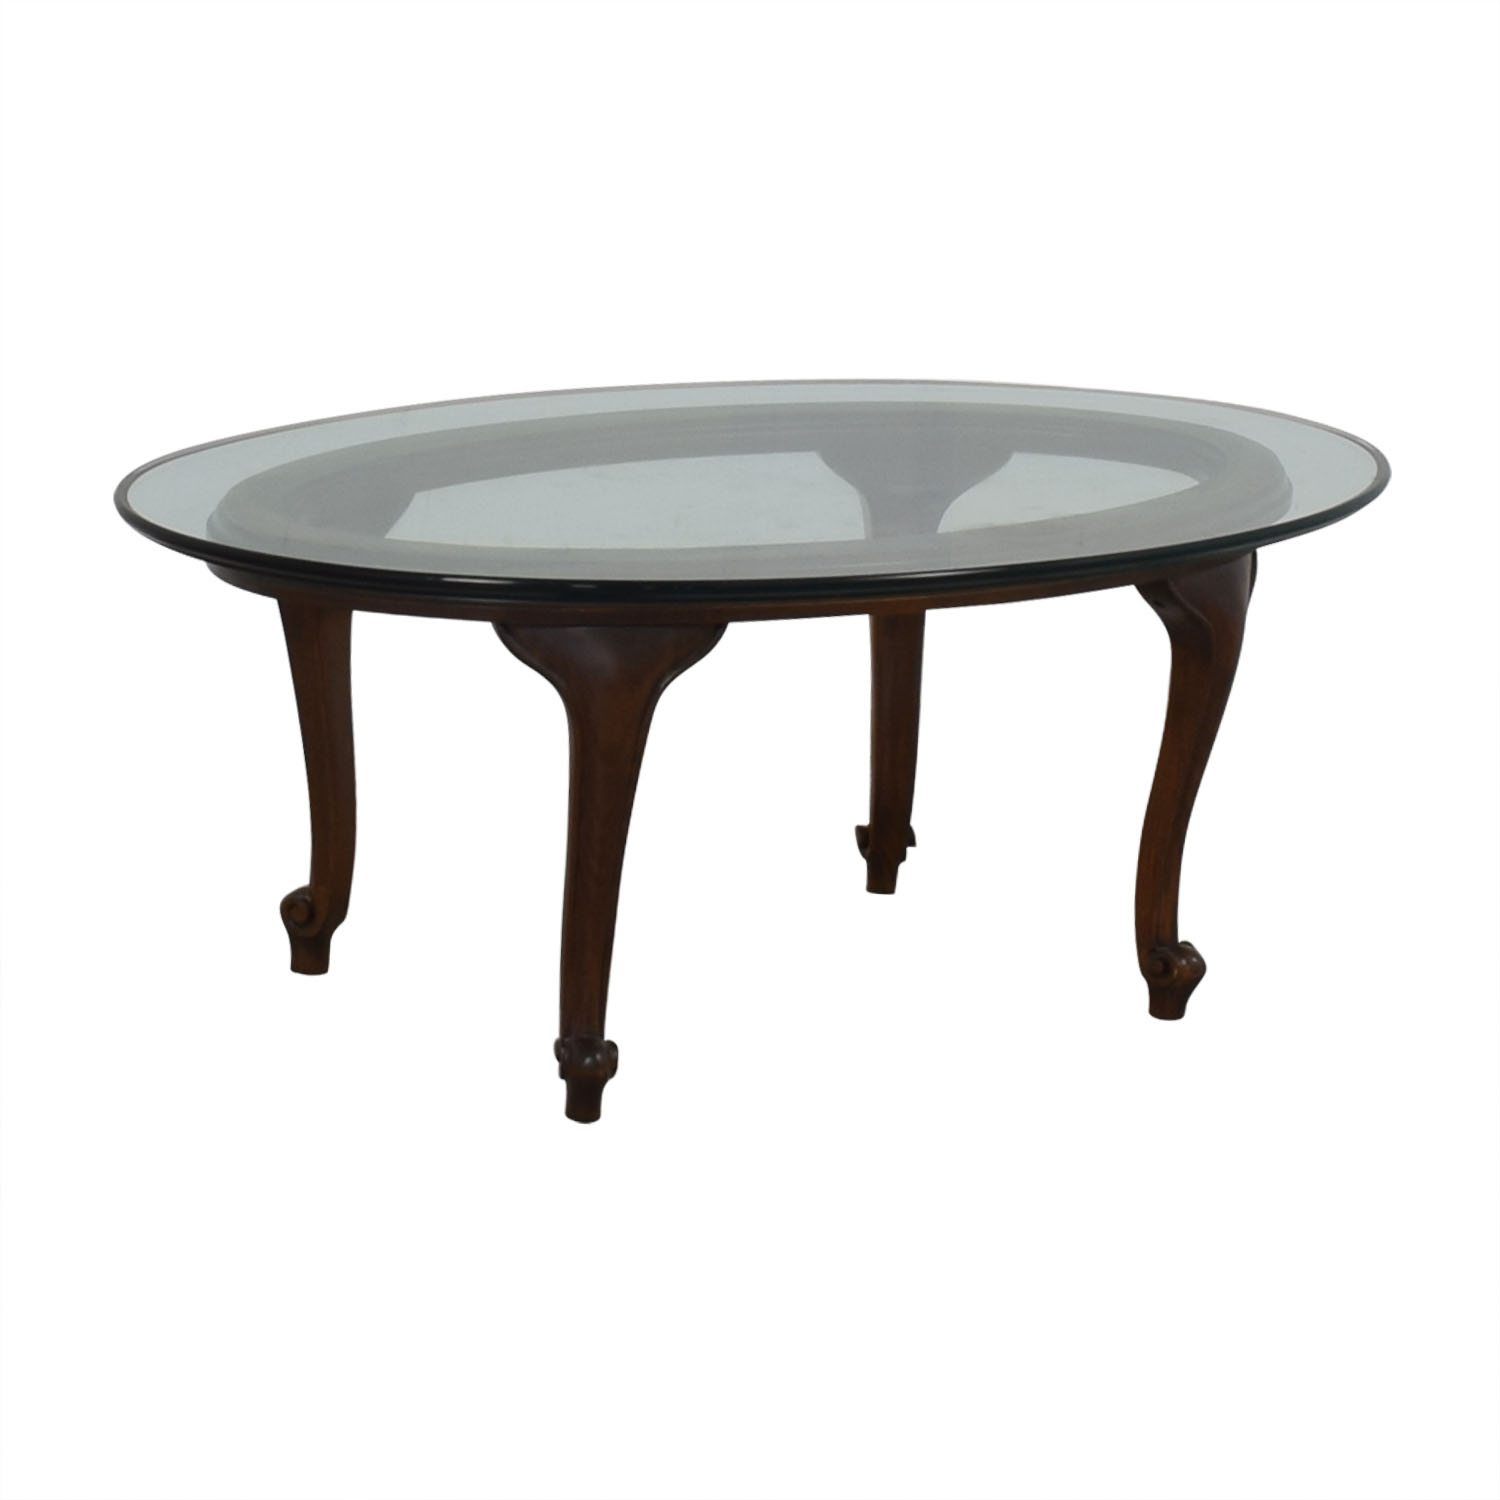 shop Macy's Oval Coffee Table Macy's